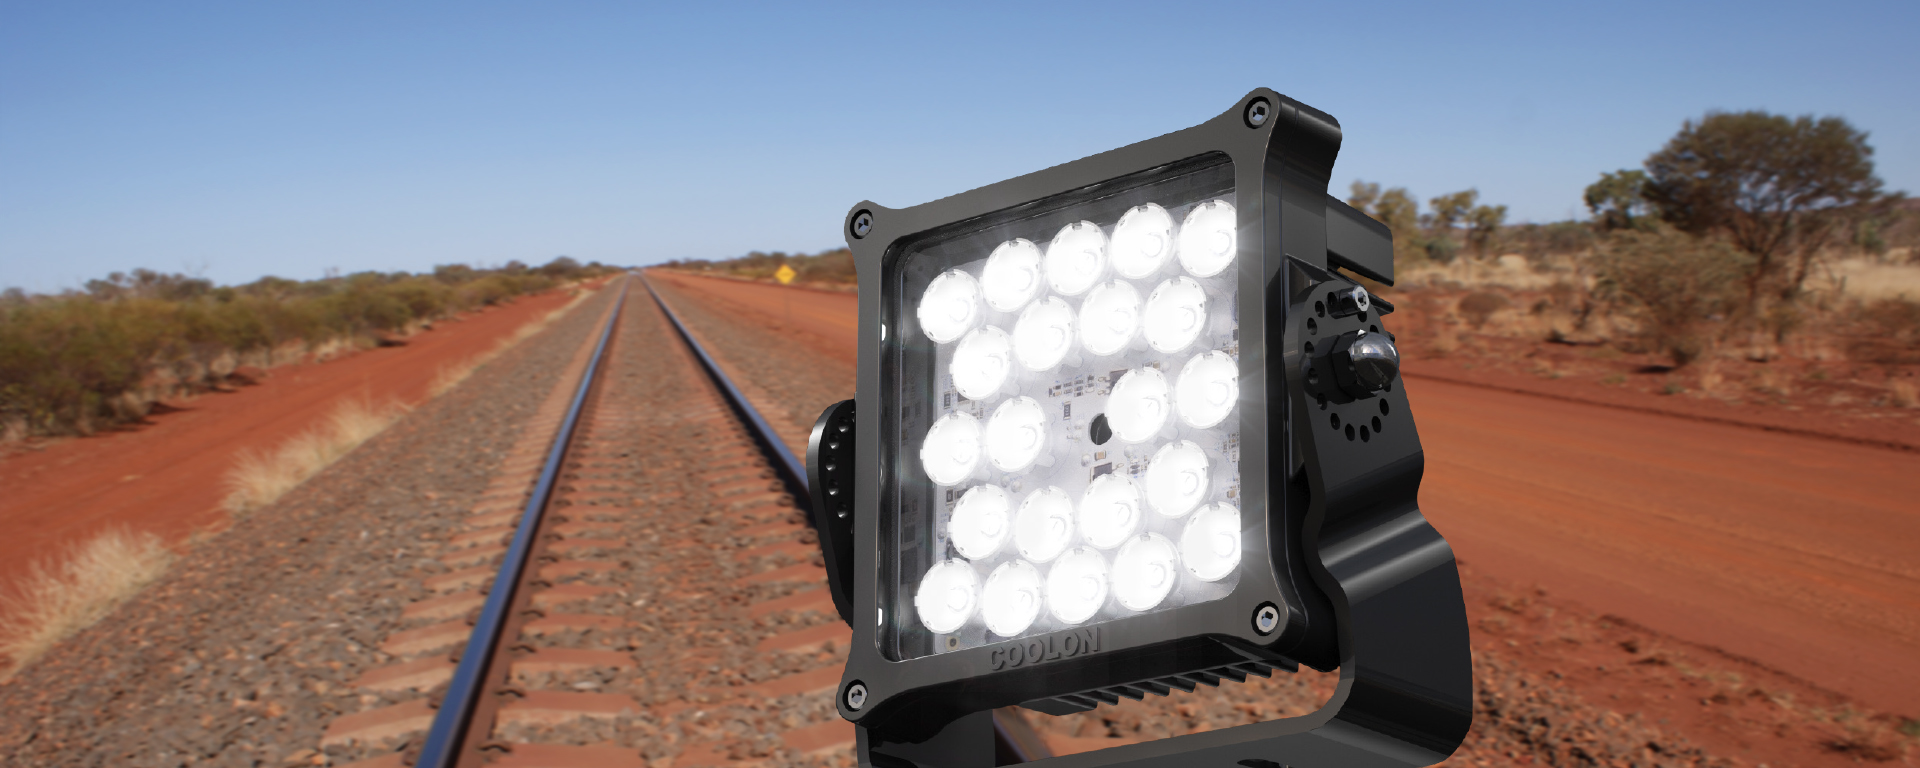 The CP22 led mining floodlight forms an ideal luminaire for long distance, narrow beam illumination in a low power configuration. Its robust build ensures long life even with continuous exposure to vibration and elements.